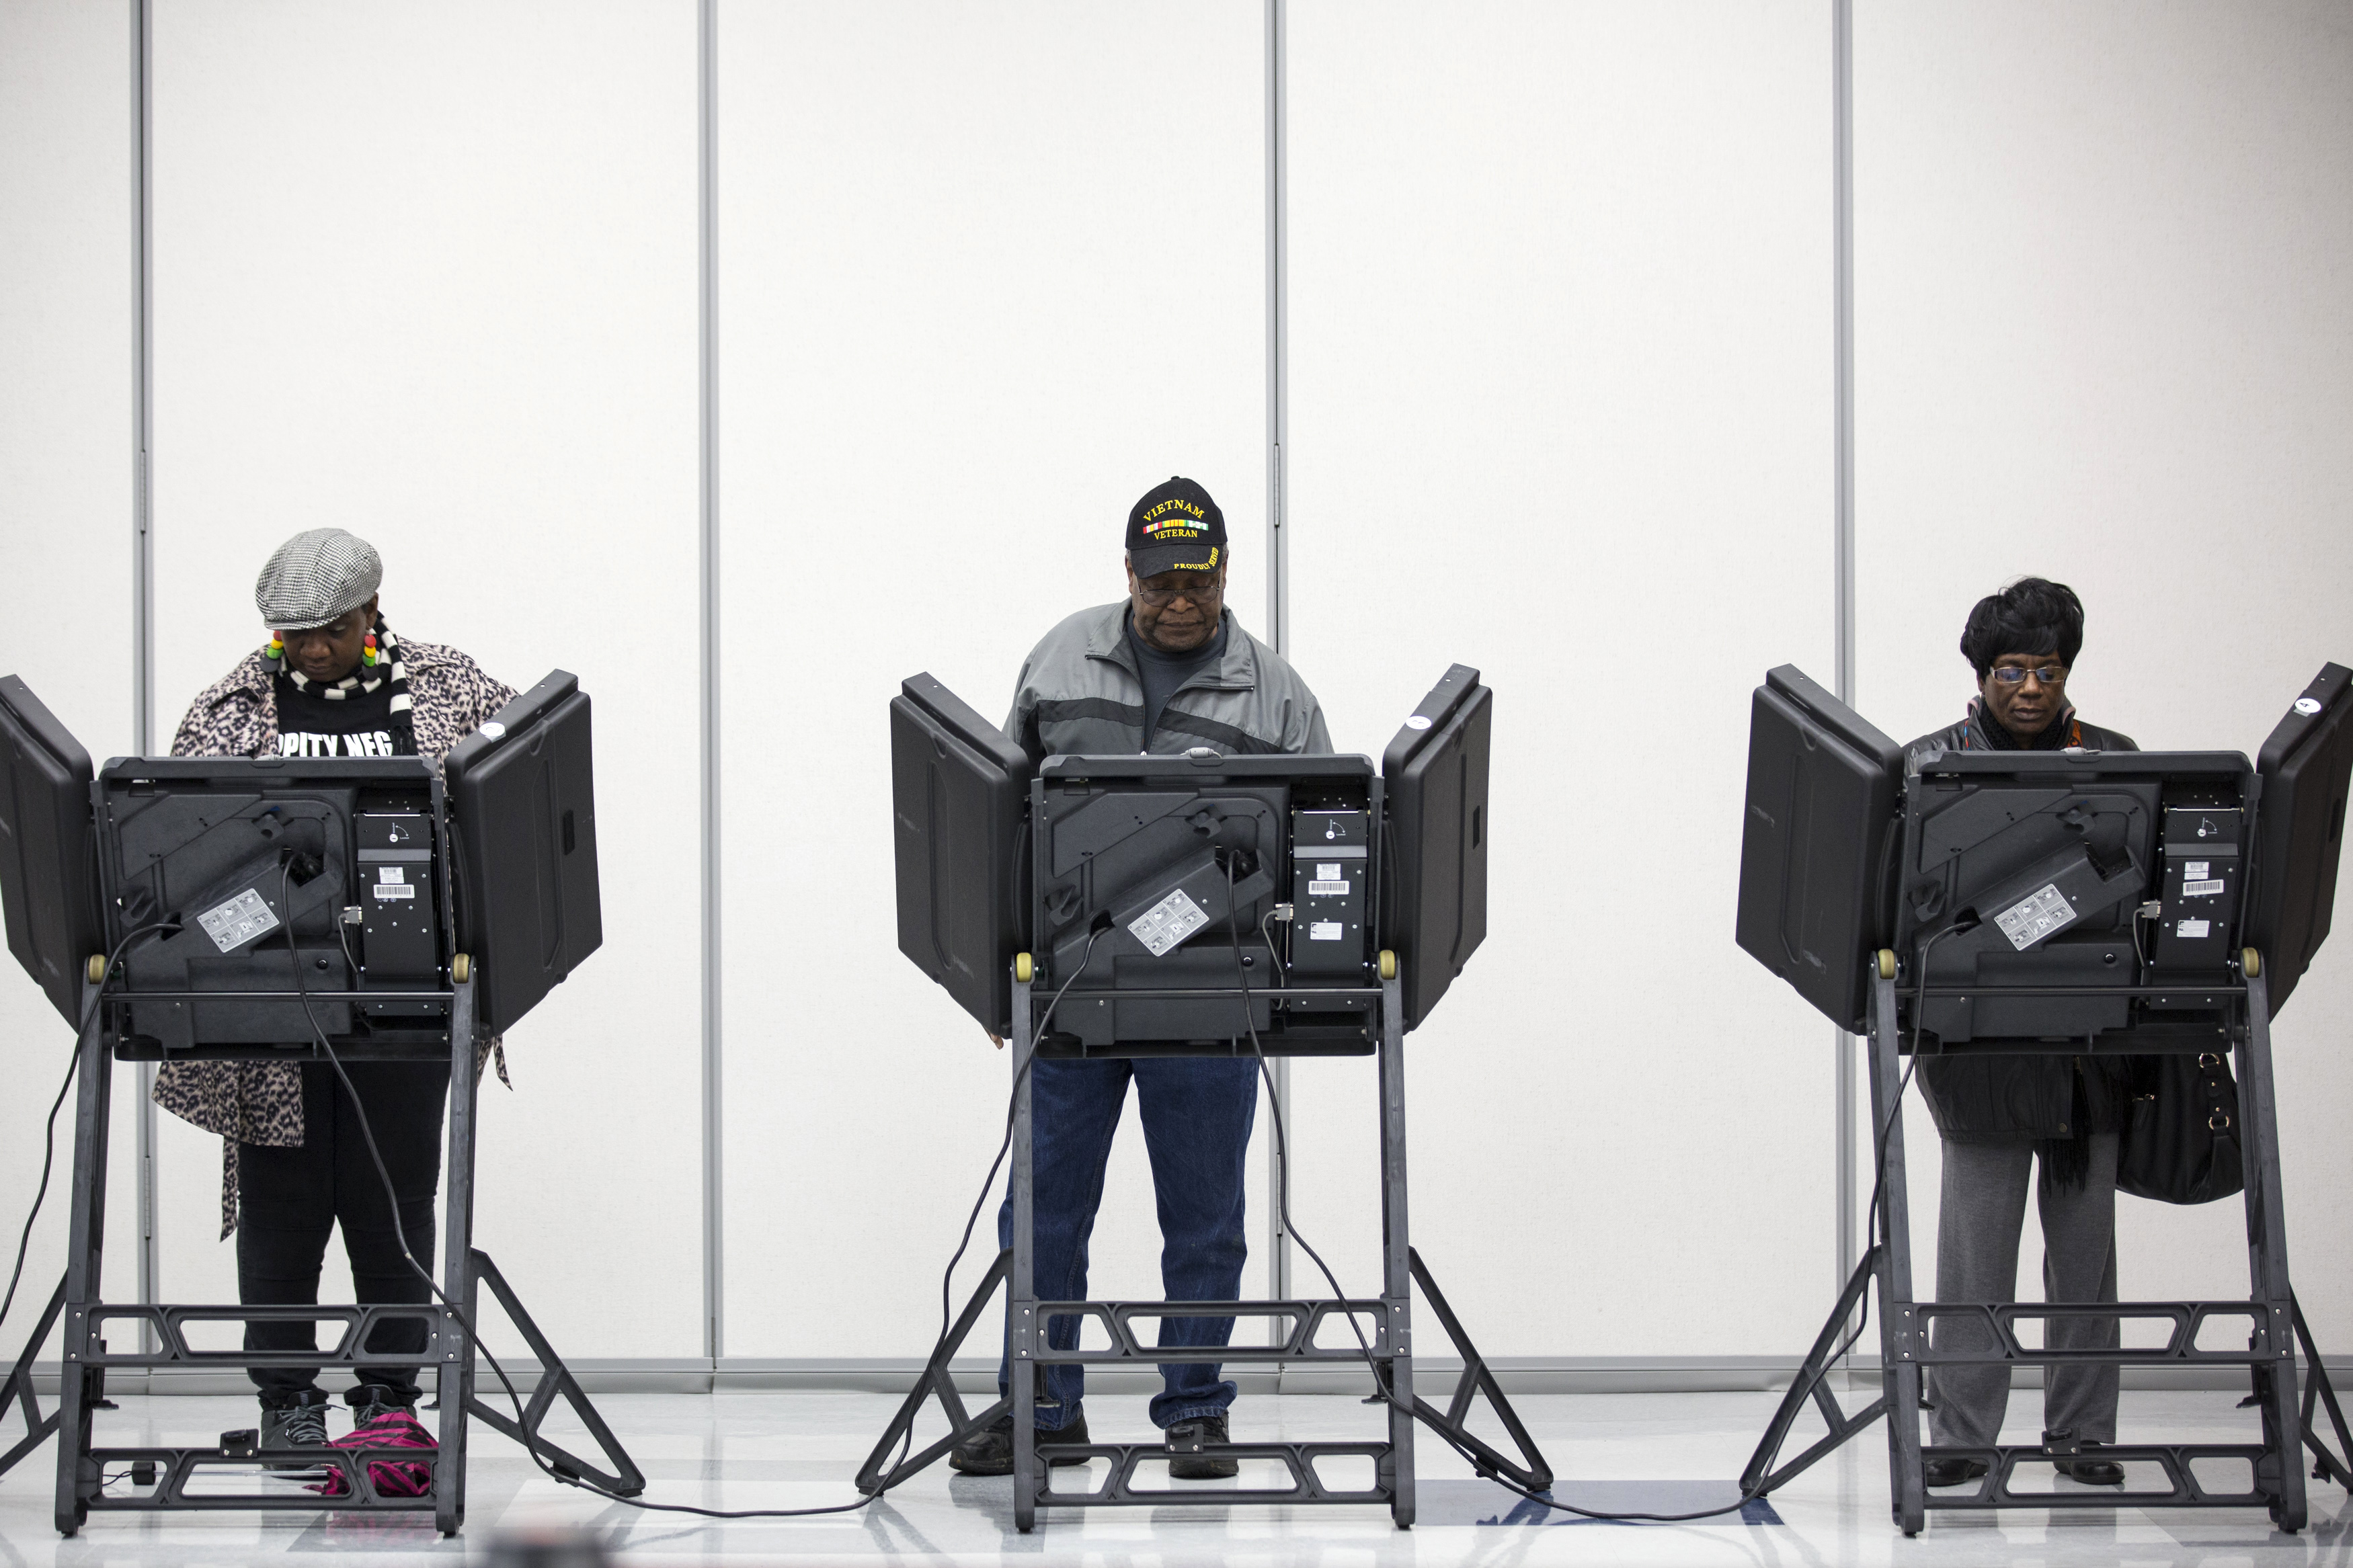 Voters cast their ballots in US midterm elections in Ferguson, Missouri, on November 4, 2014.